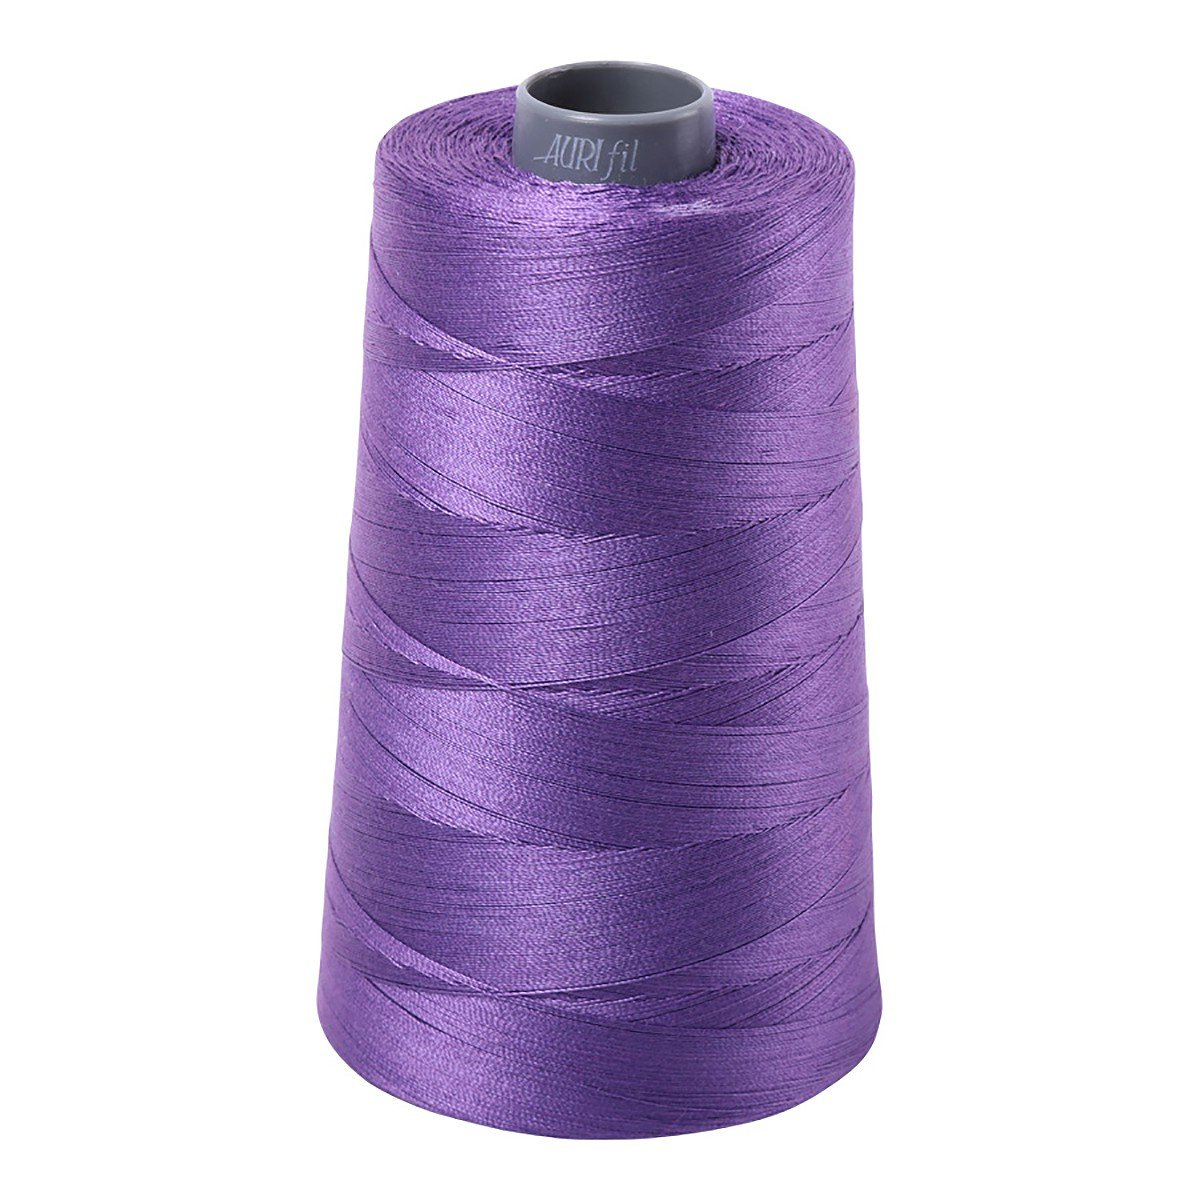 Mako (Cotton) Embroidery Thread 28wt 3609yds Dusty Lavender